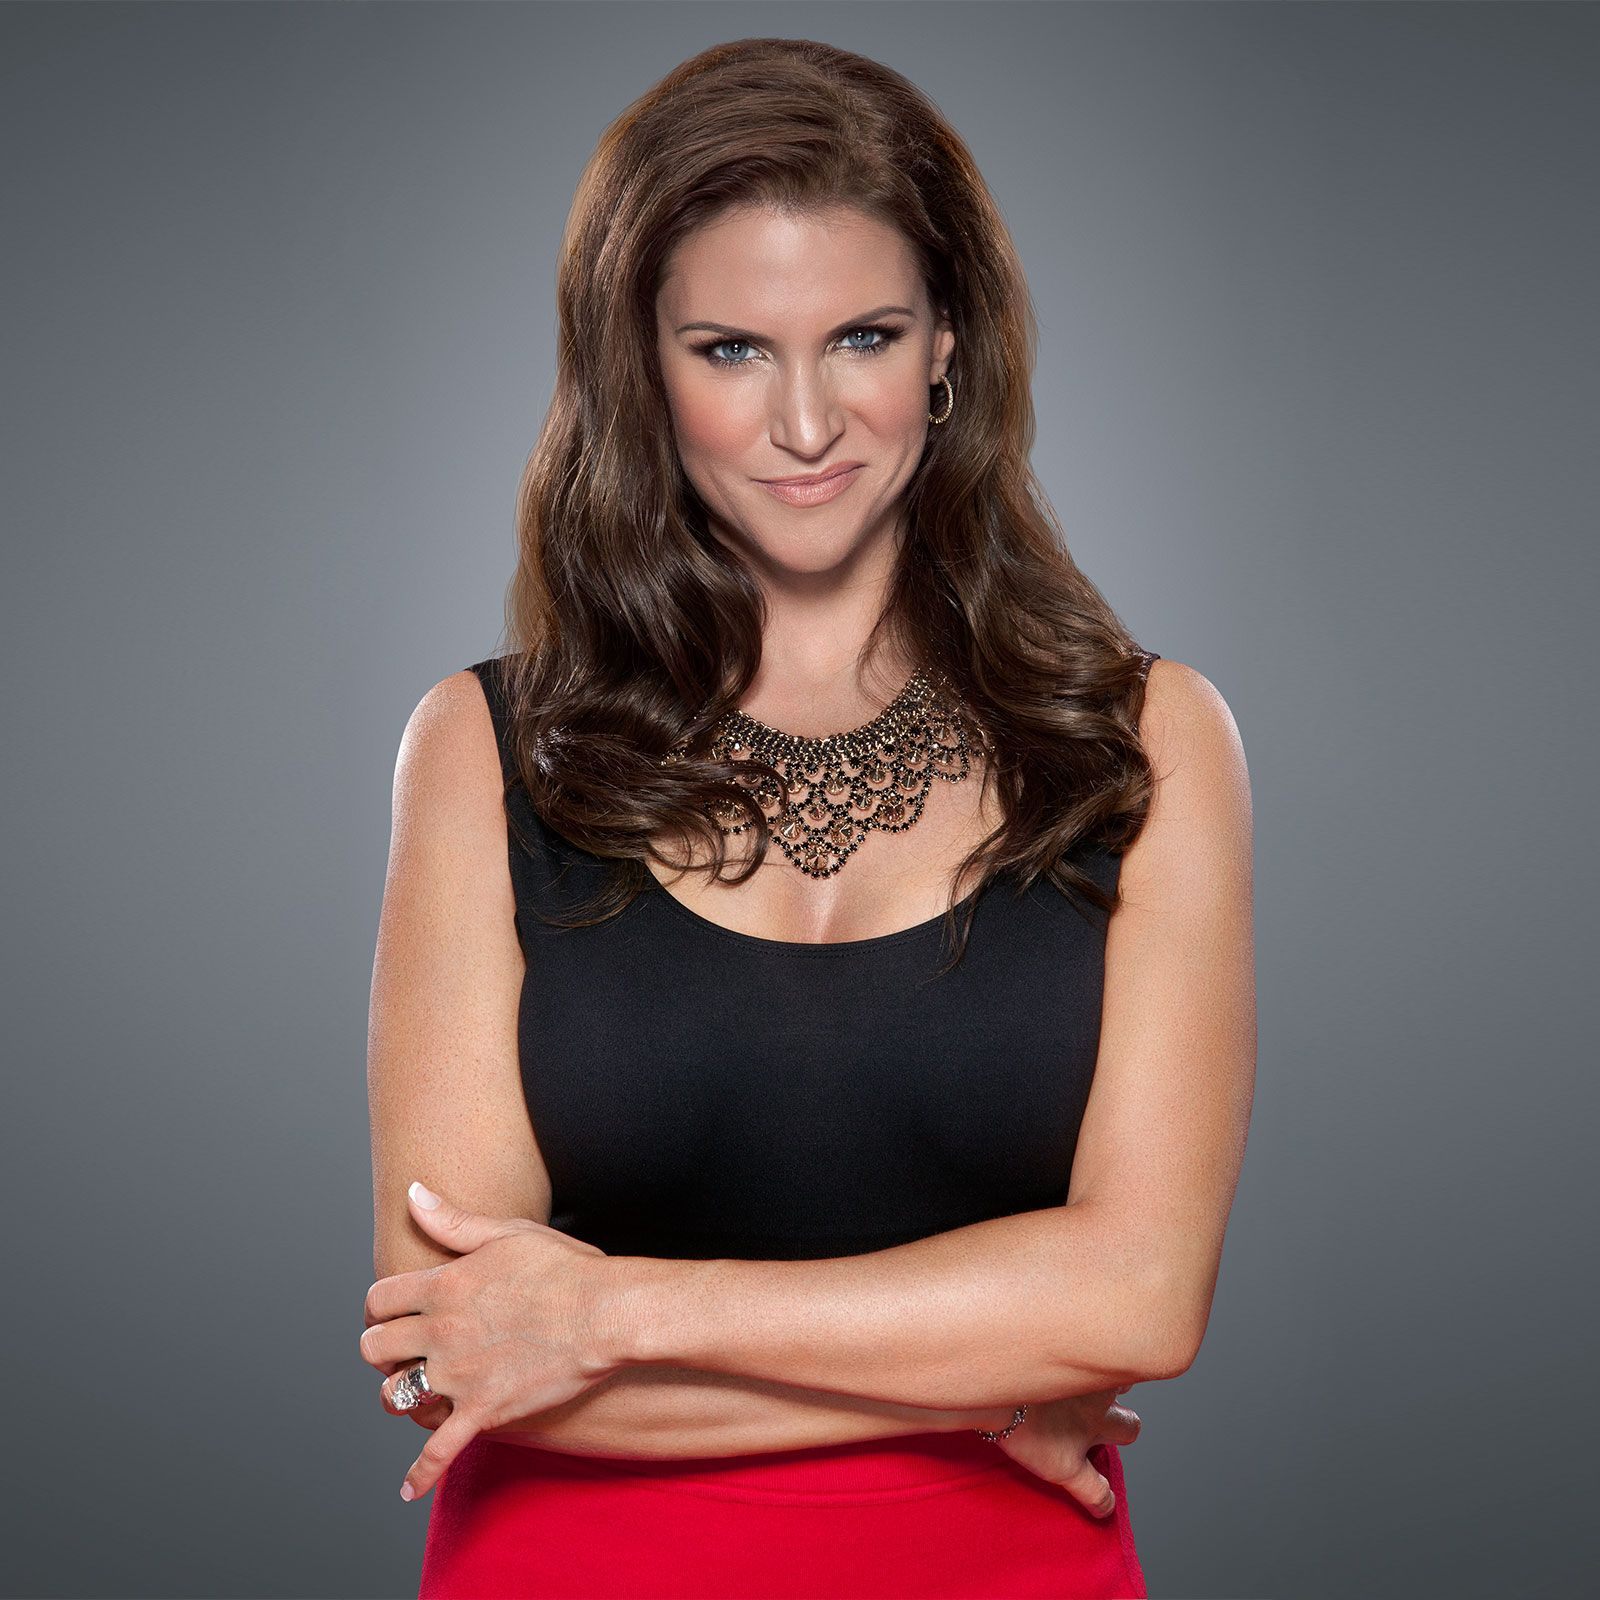 70 Hot Pictures Of Stephanie Mcmahon Wwe Diva  Best Of -2949